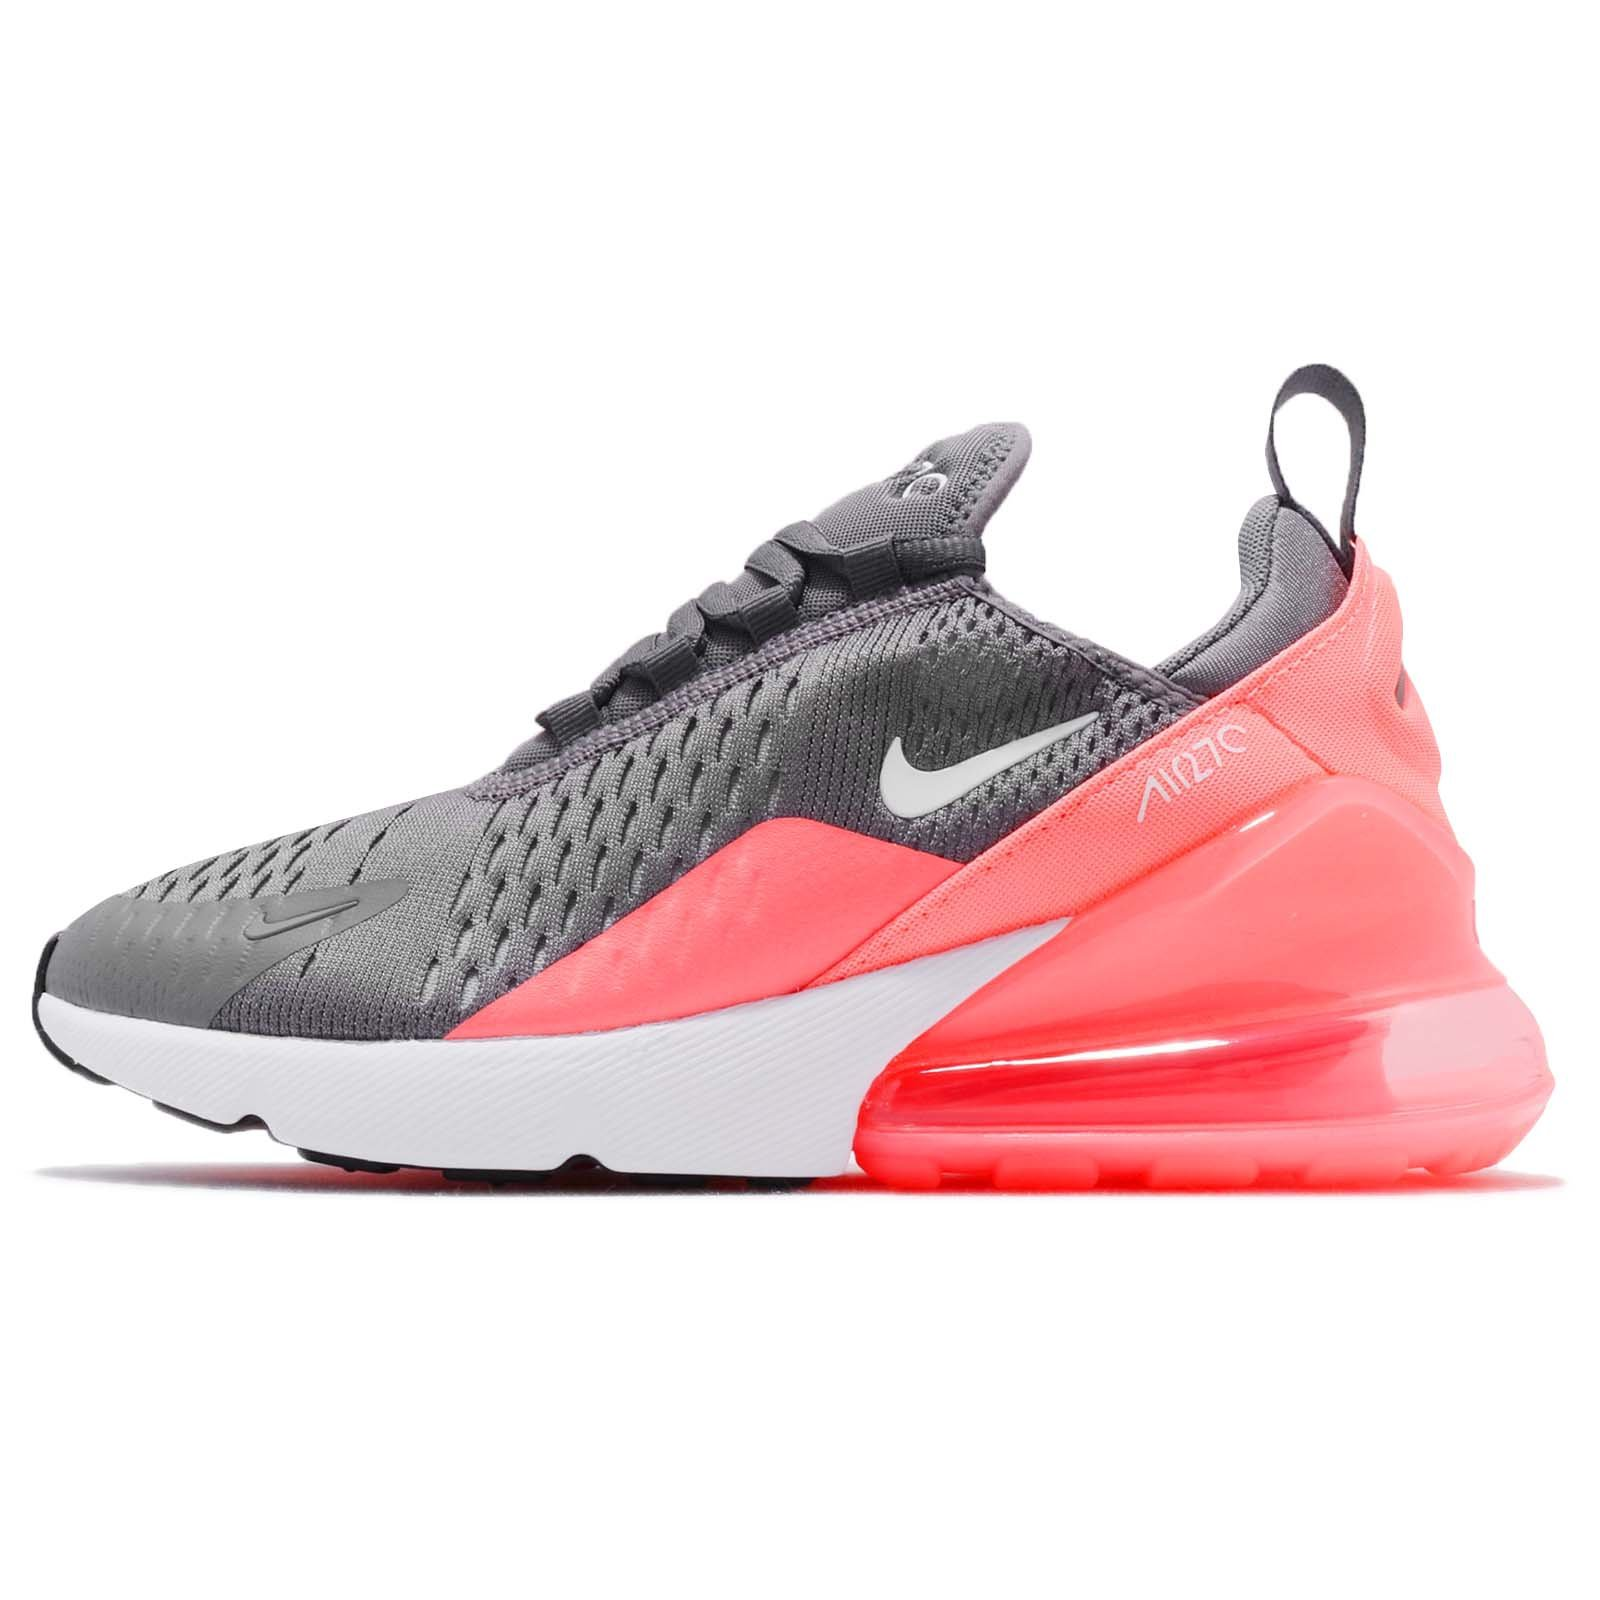 detailed look ddc68 d49fd Galleon - NIKE Kid s Air Max 270 GS, Gunsmoke White LT Atomic Pink, Youth  Size 7